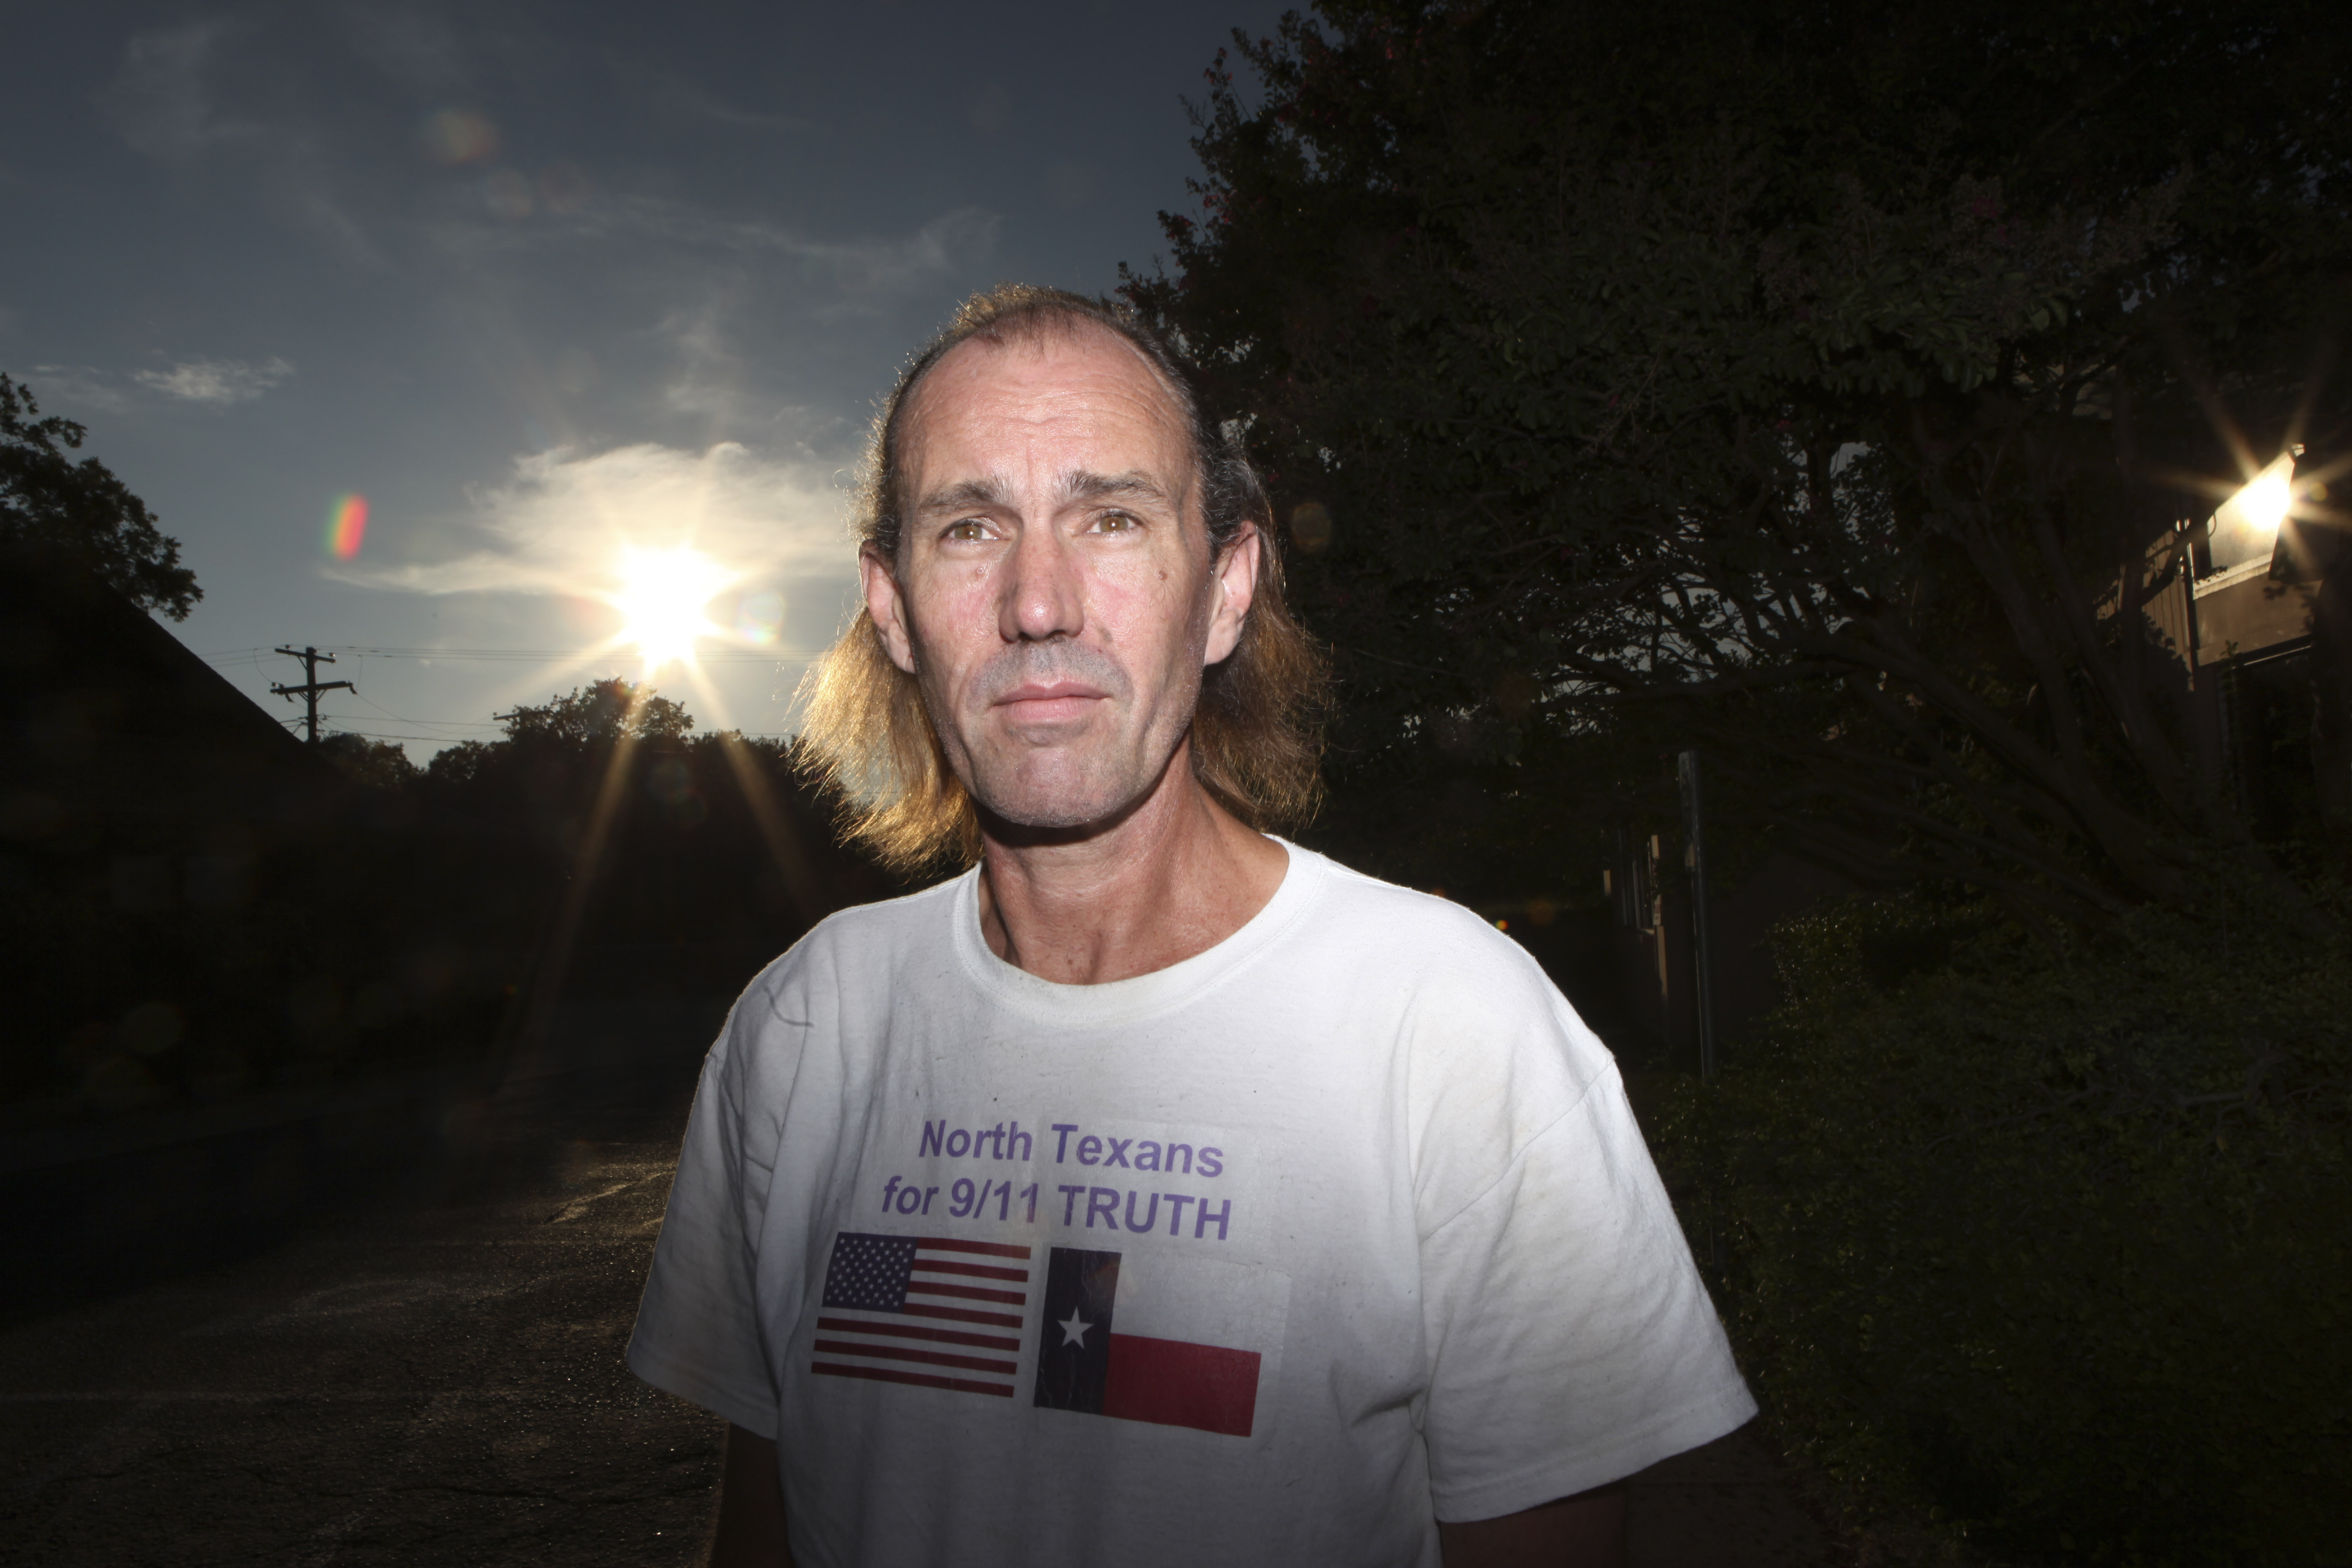 "In this July 19, 2011 photo, Bryan Black, with the North Texans for 9/11 Truth group, poses for a photo in Dallas. Nationwide, the skeptics, who prefer the term ""9/11 truth activists"" instead of the moniker ""truthers,"" generally have about a dozen beliefs surrounding what happened on that day, although there are some variations on who was responsible for the attacks and why. Among the beliefs: that the World Trade Center buildings could never have collapsed due to fire, that the buildings were brought down by explosives, that there were warnings of the impending attacks from 11 different countries and that fighter jets could have intercepted at least one of the four planes that day. Many believe that there were criminal elements within the government that caused the attacks."